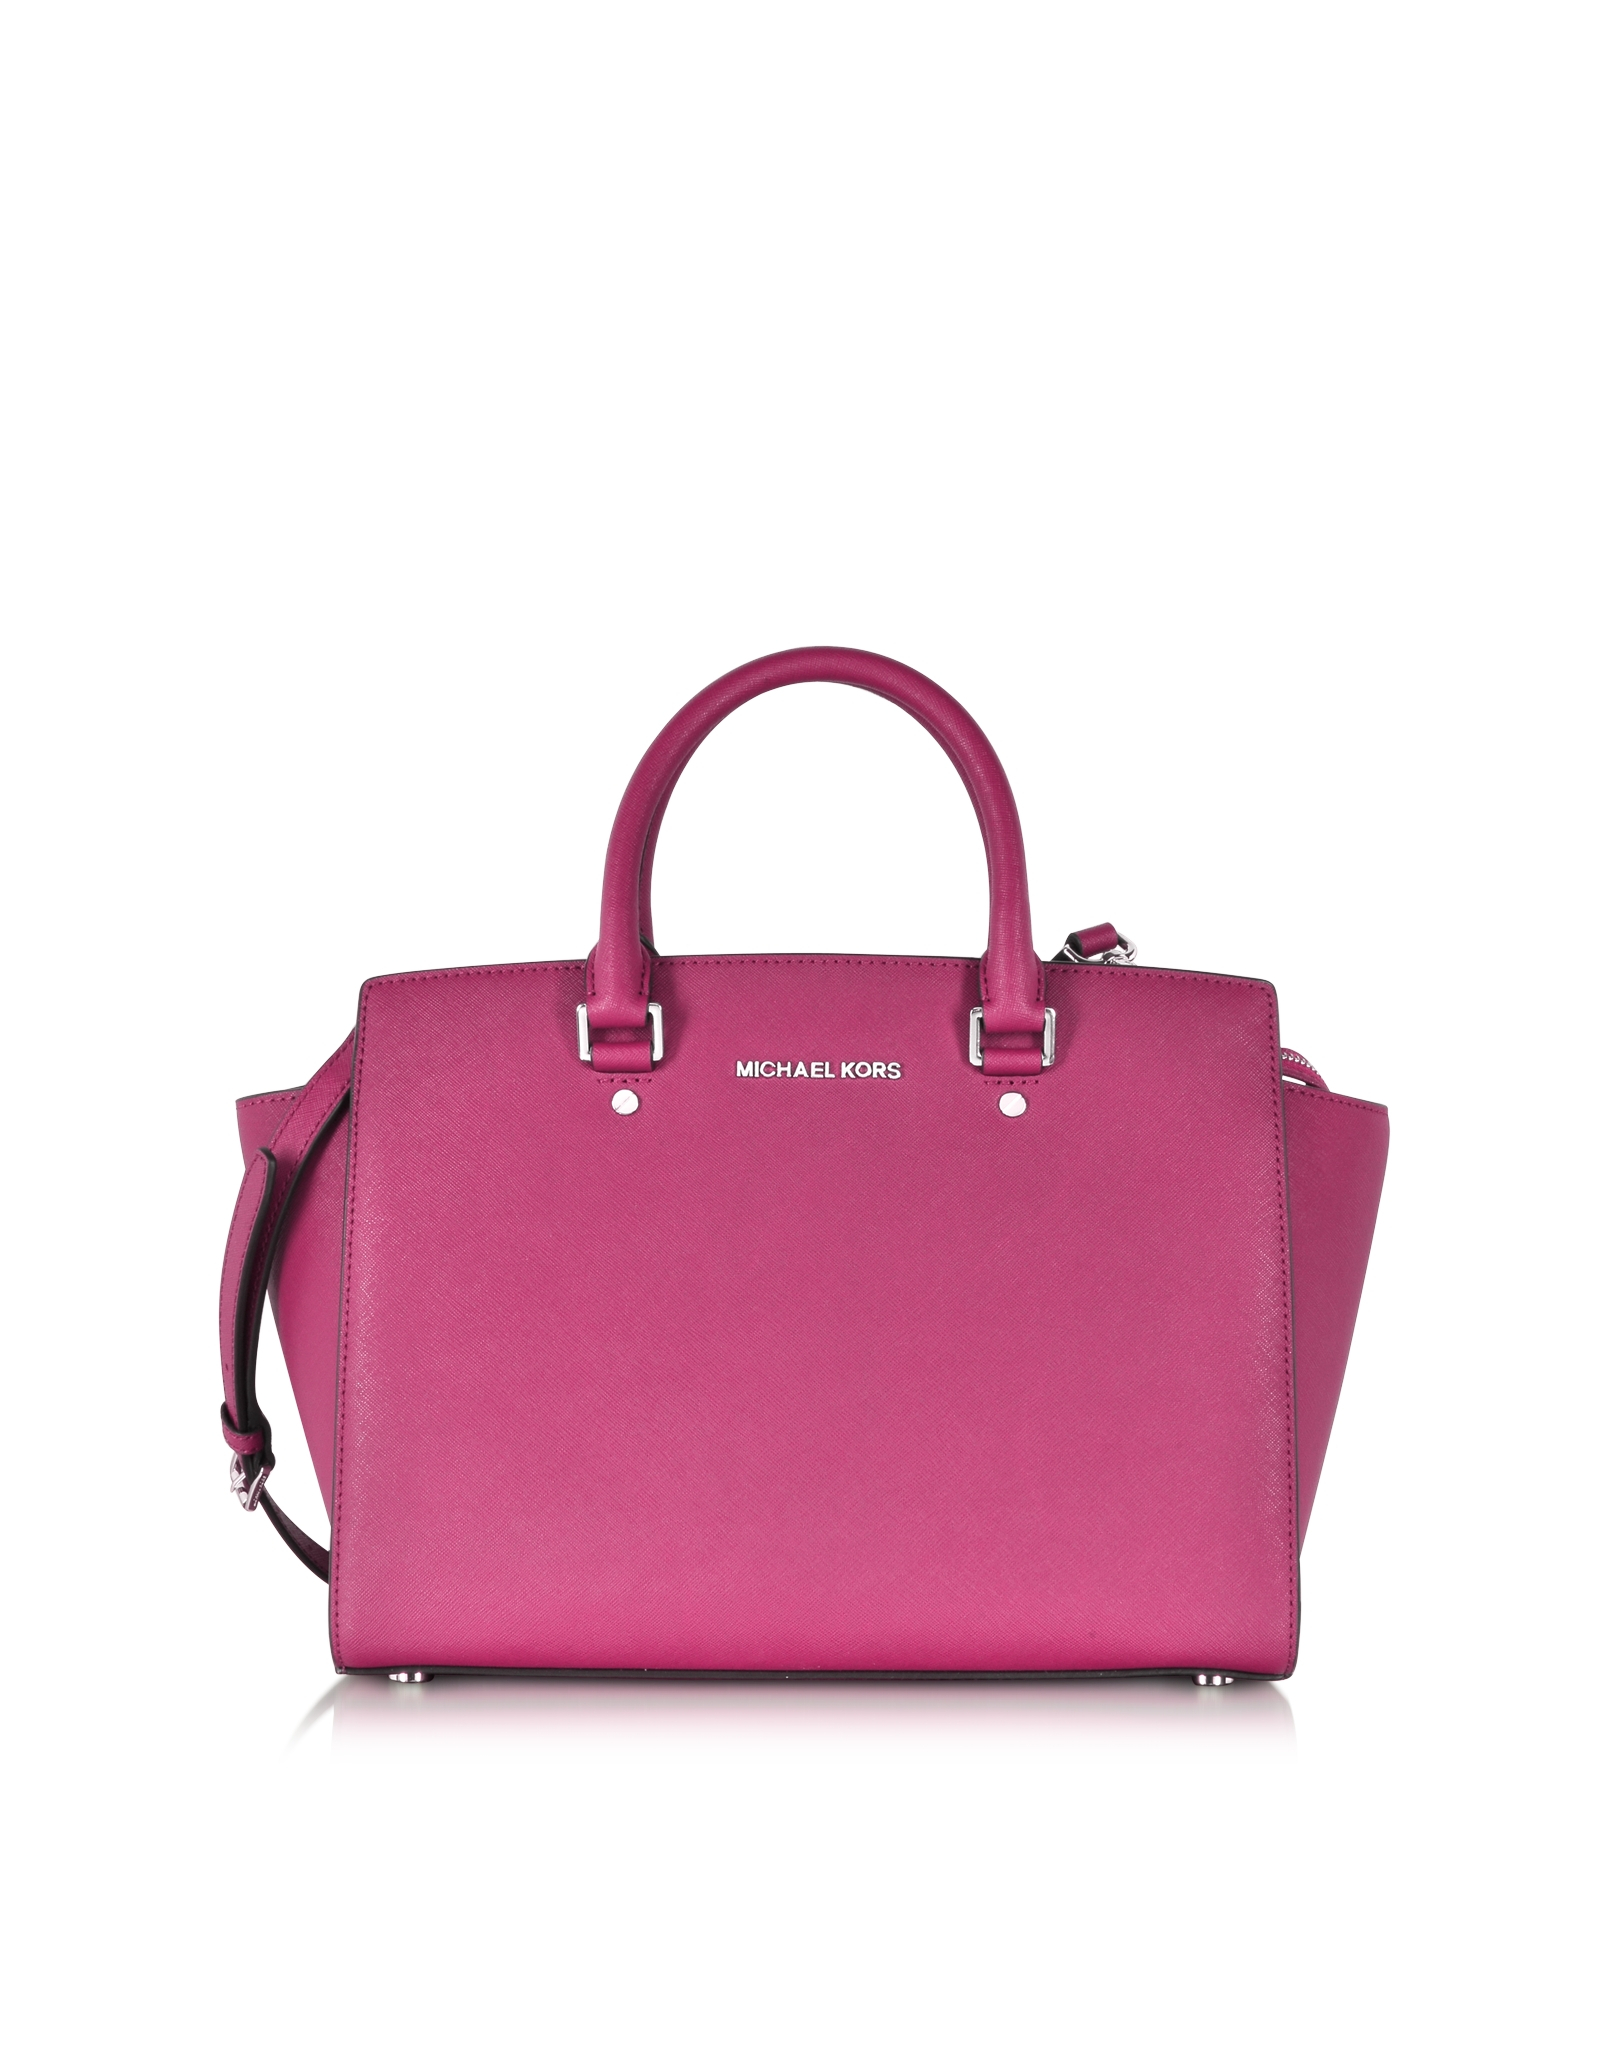 michael kors selma pink michael kors selma pink tote bag in pink lyst michael kors selma large. Black Bedroom Furniture Sets. Home Design Ideas